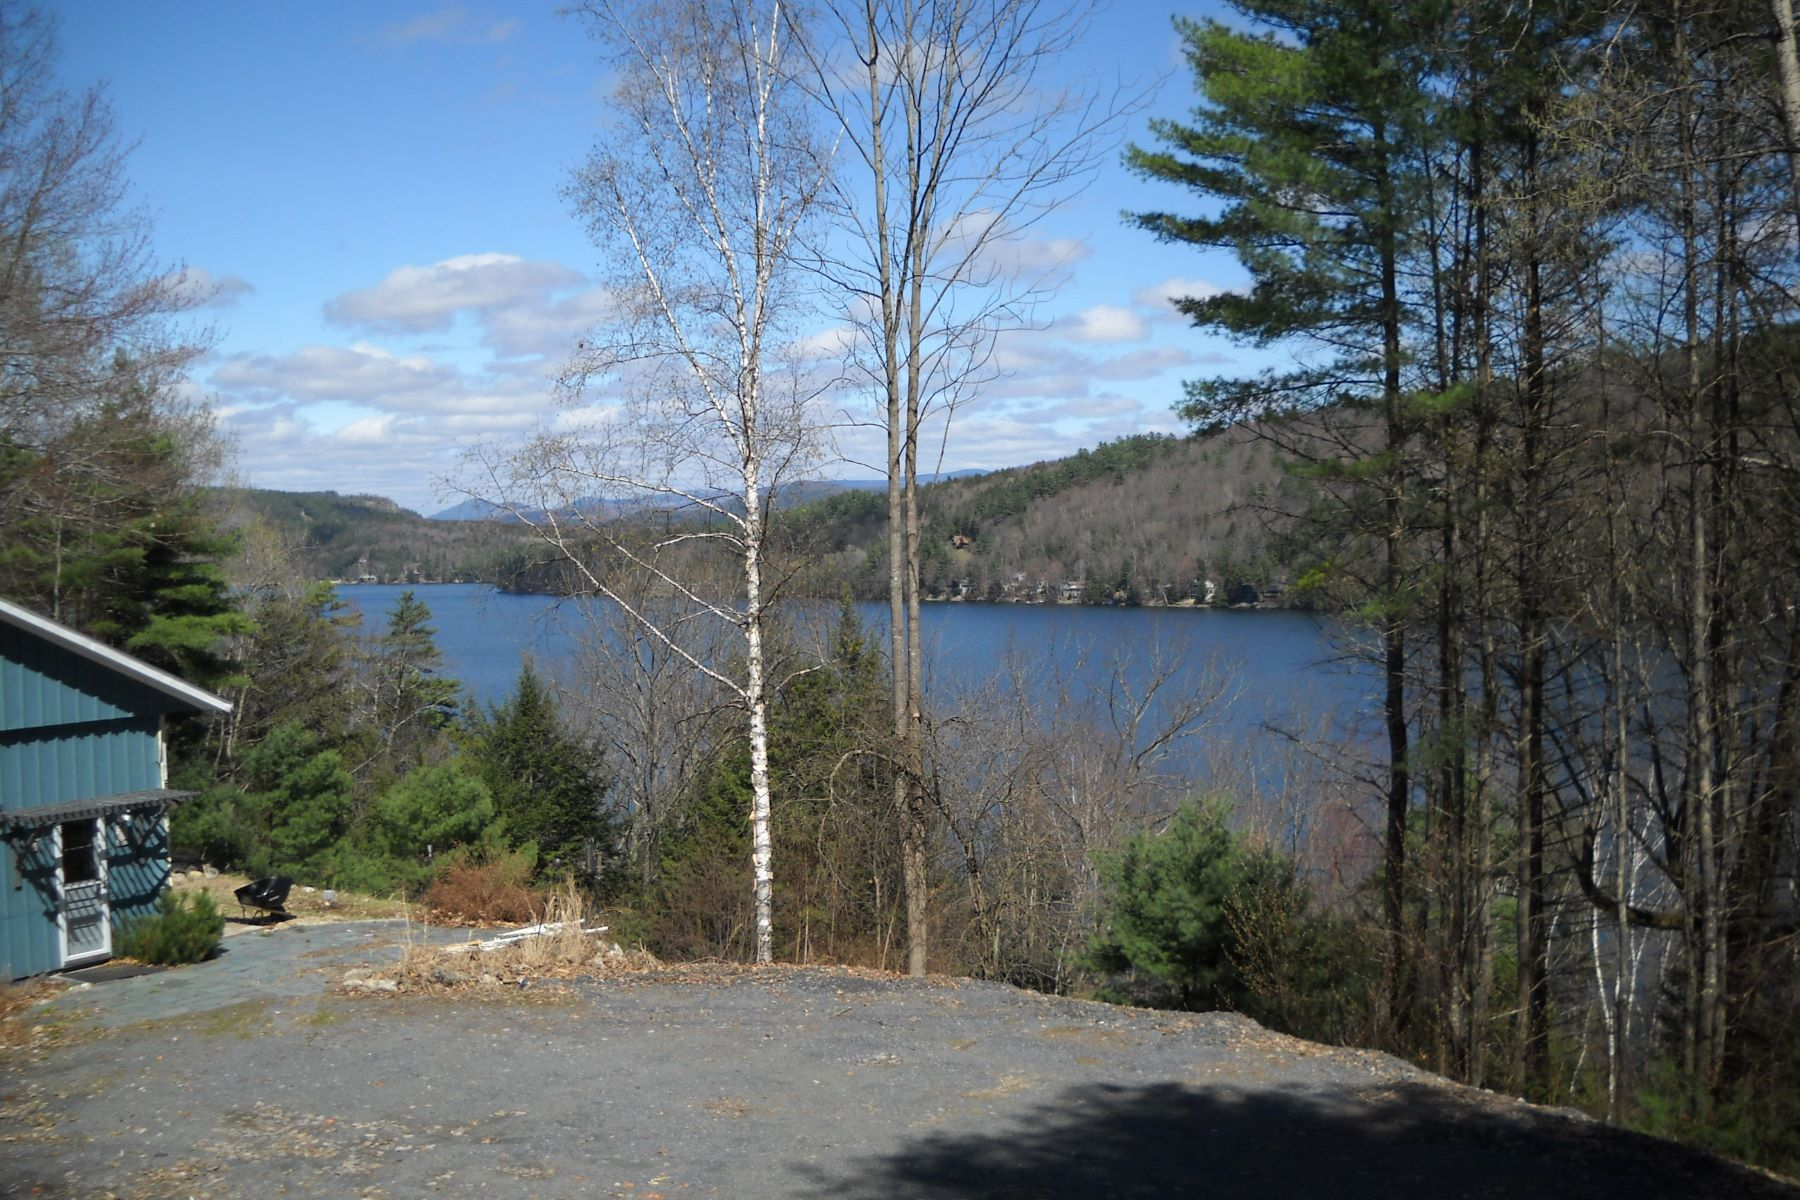 Land for Sale at Views of Lake Morey 174 Bald Top Rd Fairlee, Vermont 05045 United States